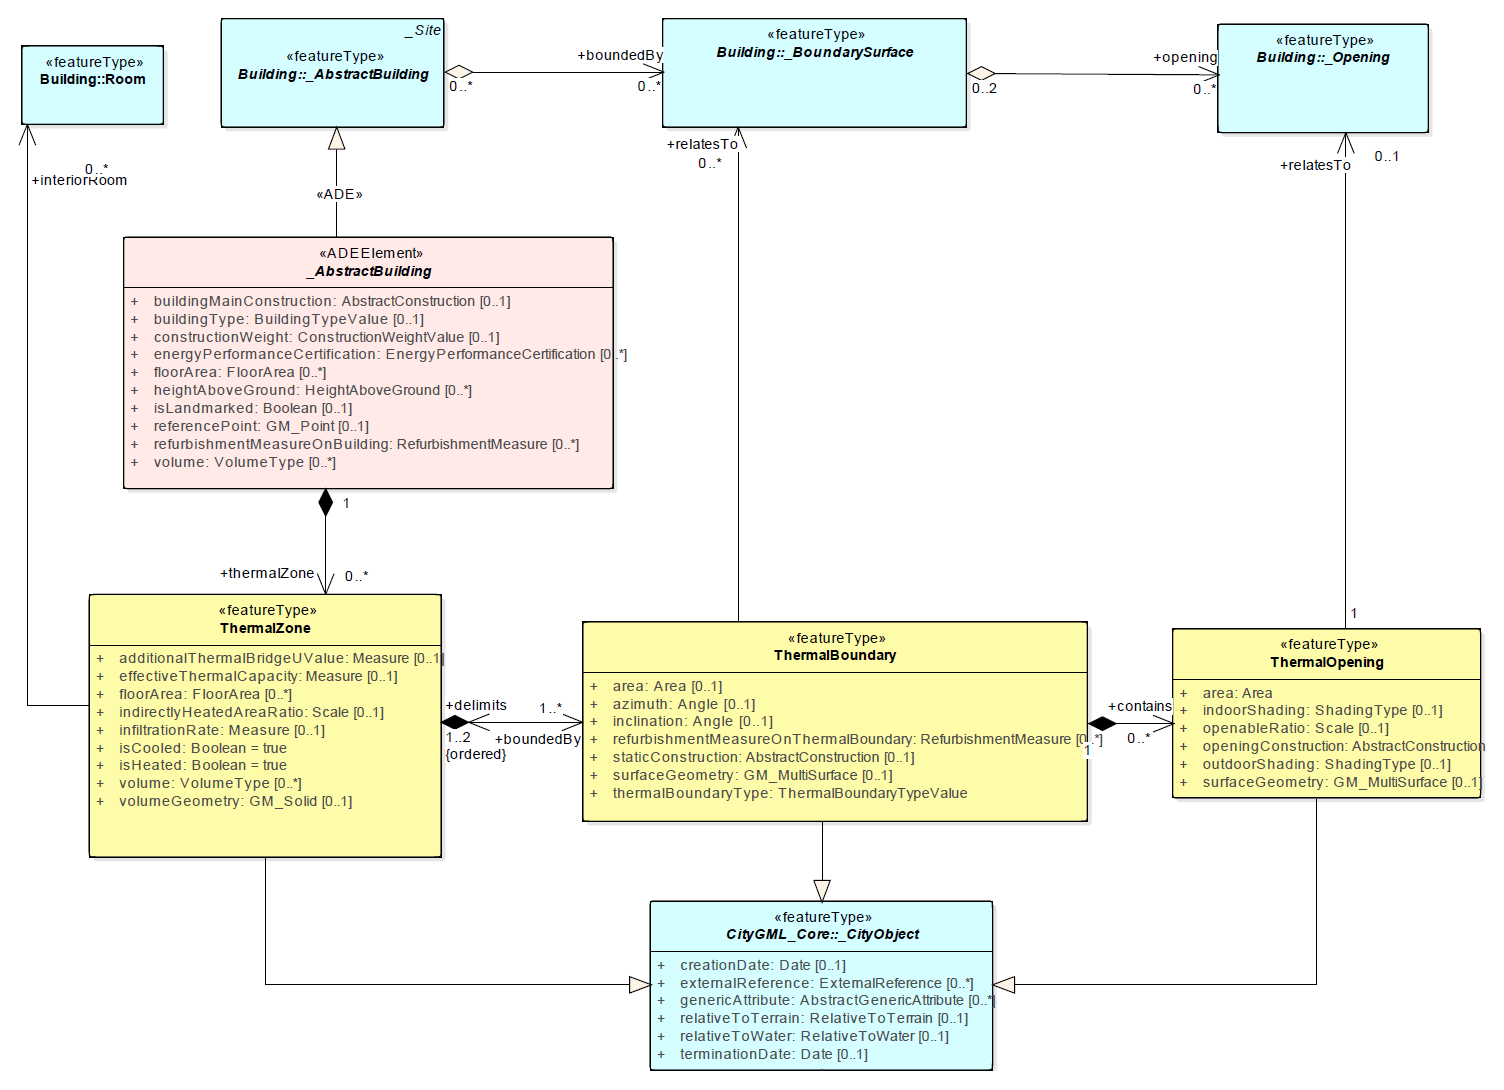 doc/guidelines/fig/BuildingPhysics_onlyFeature.png